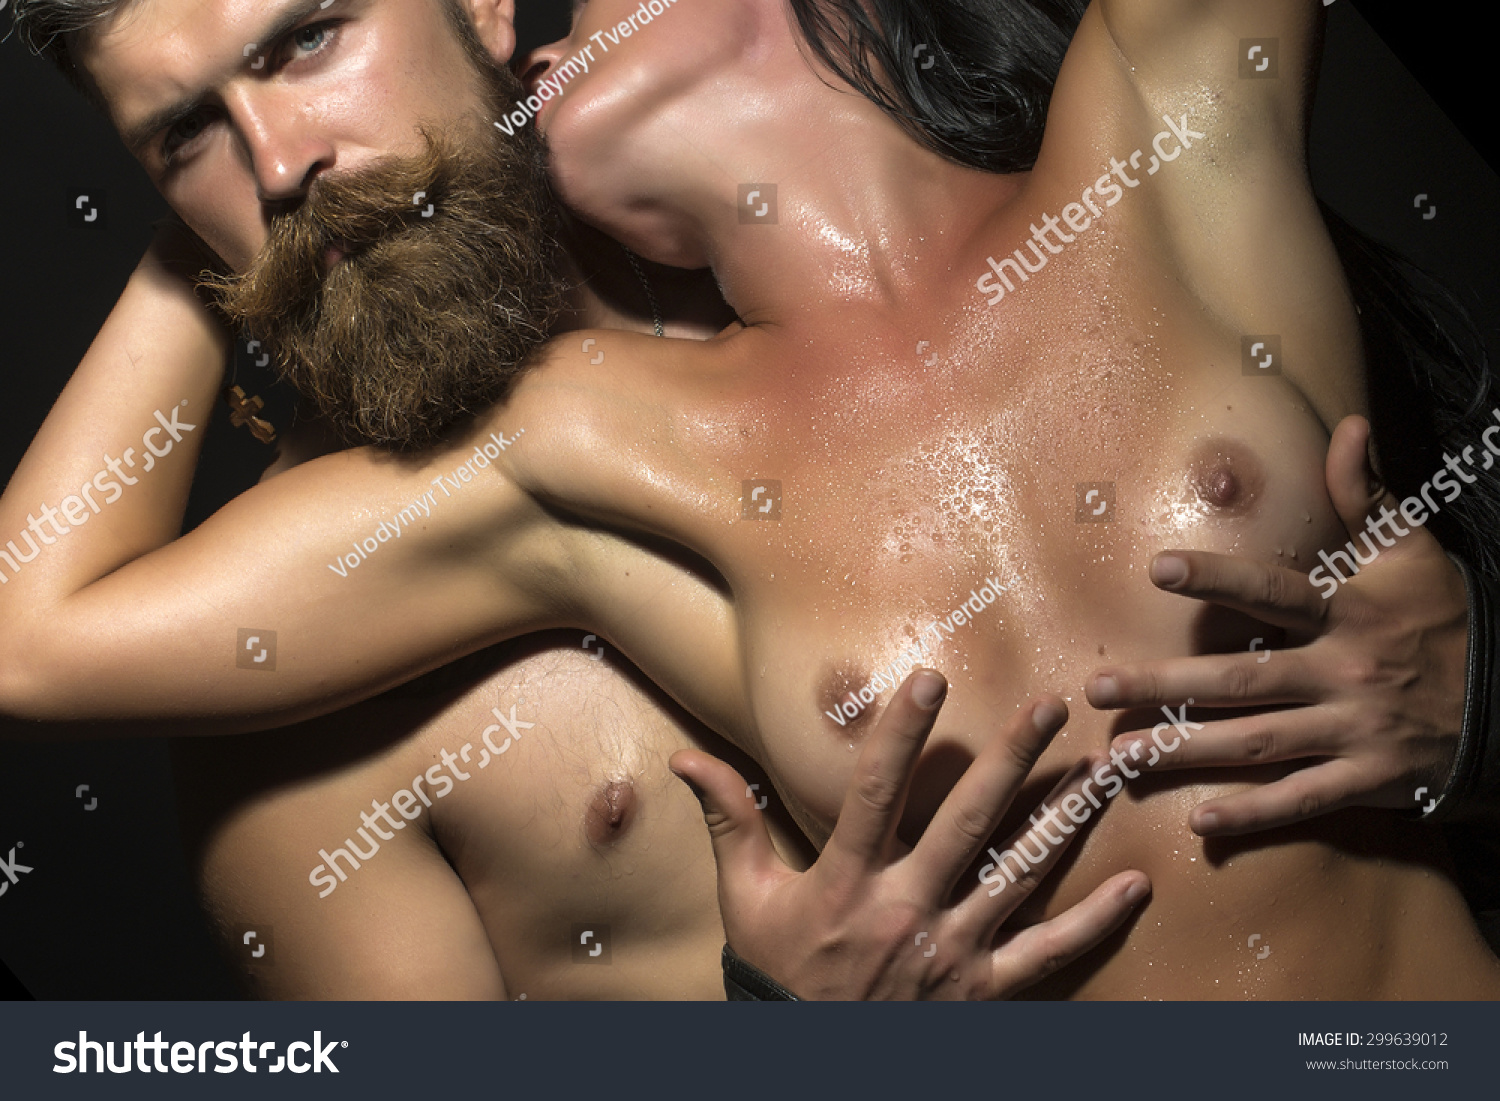 men rubbing womens breasts